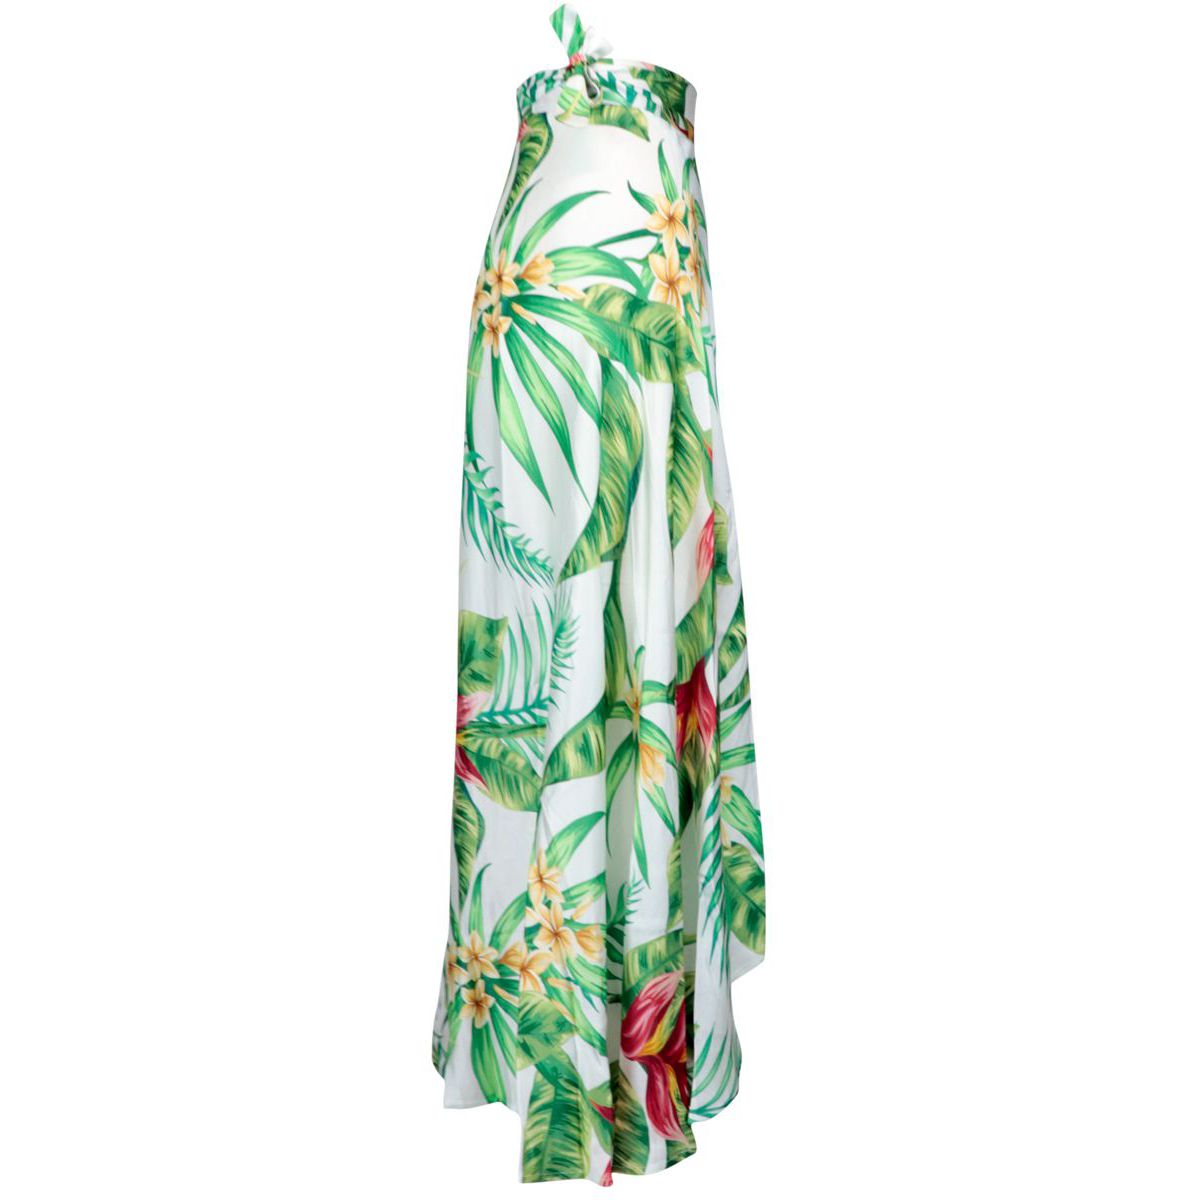 Long skirt in floral print viscose White / teal MC2 Saint Barth